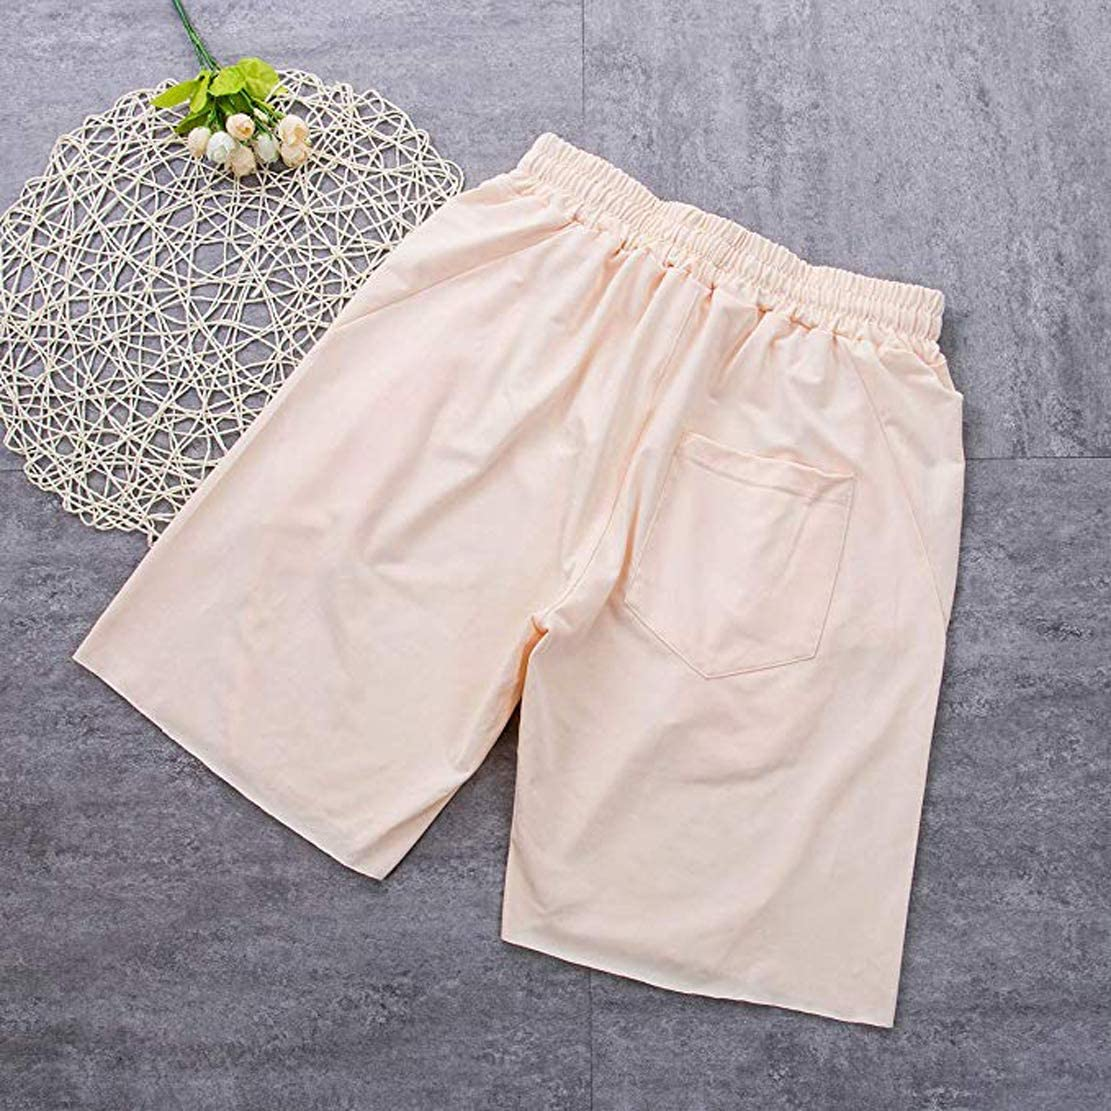 do.Cross Men/´s Shorts Loose Trunks Sweatpants for Sports Casual Short Pants Jogging Running Shorts with Pocket